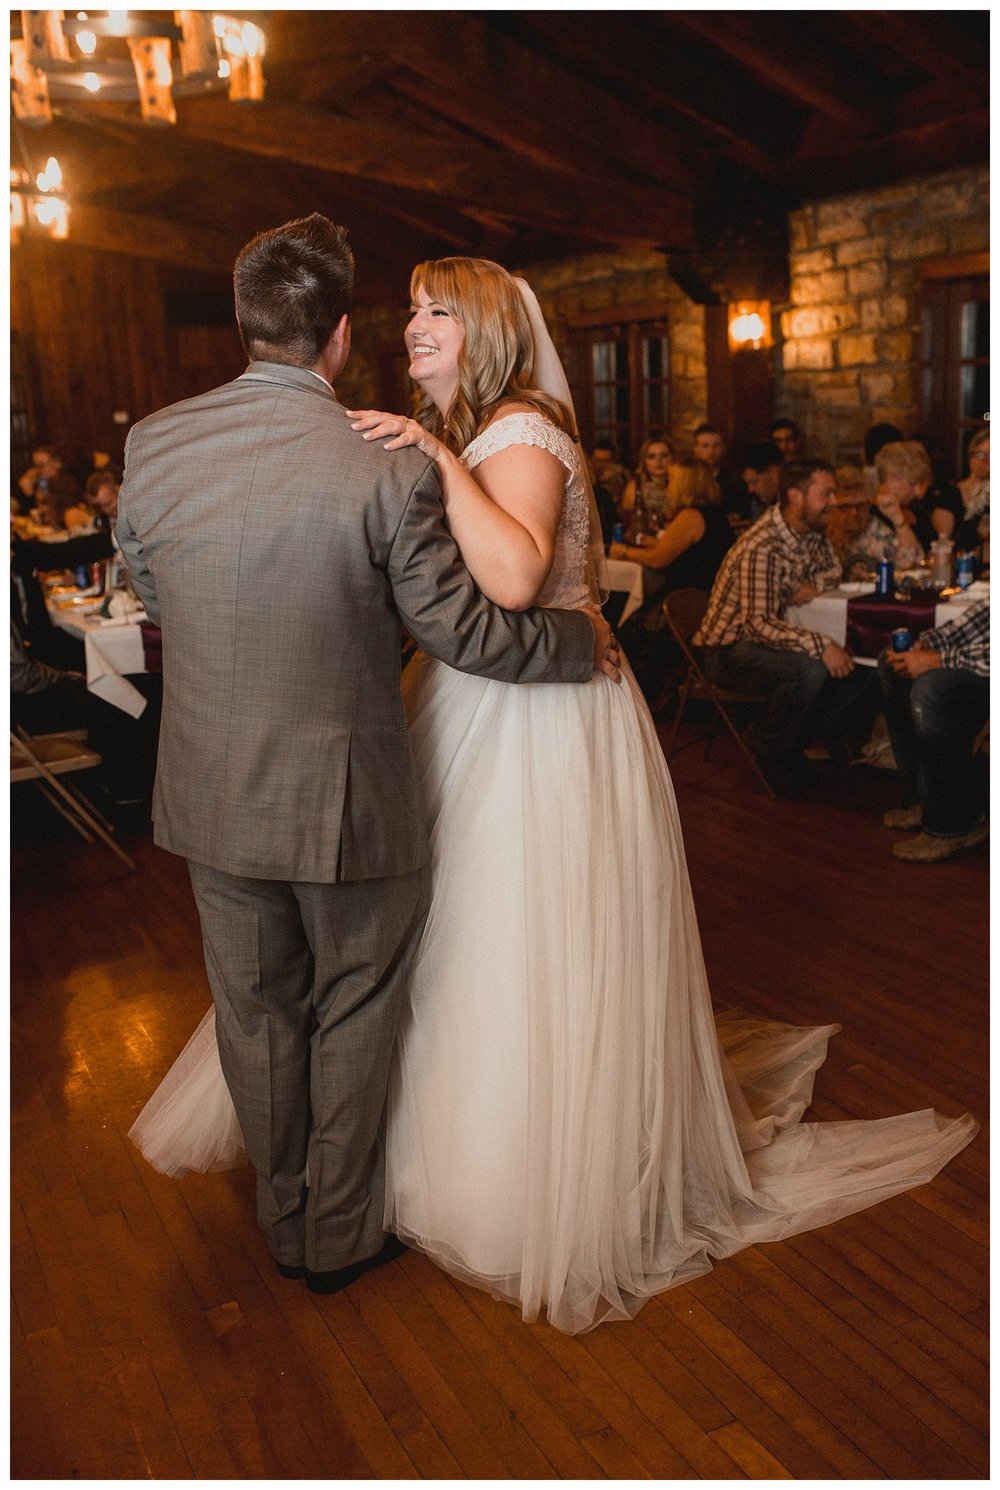 Kelsey_Diane_Photography_Loose_Mansion_Wedding_Photography_Kansas_City_Victor_Lyndsay_0399.jpg